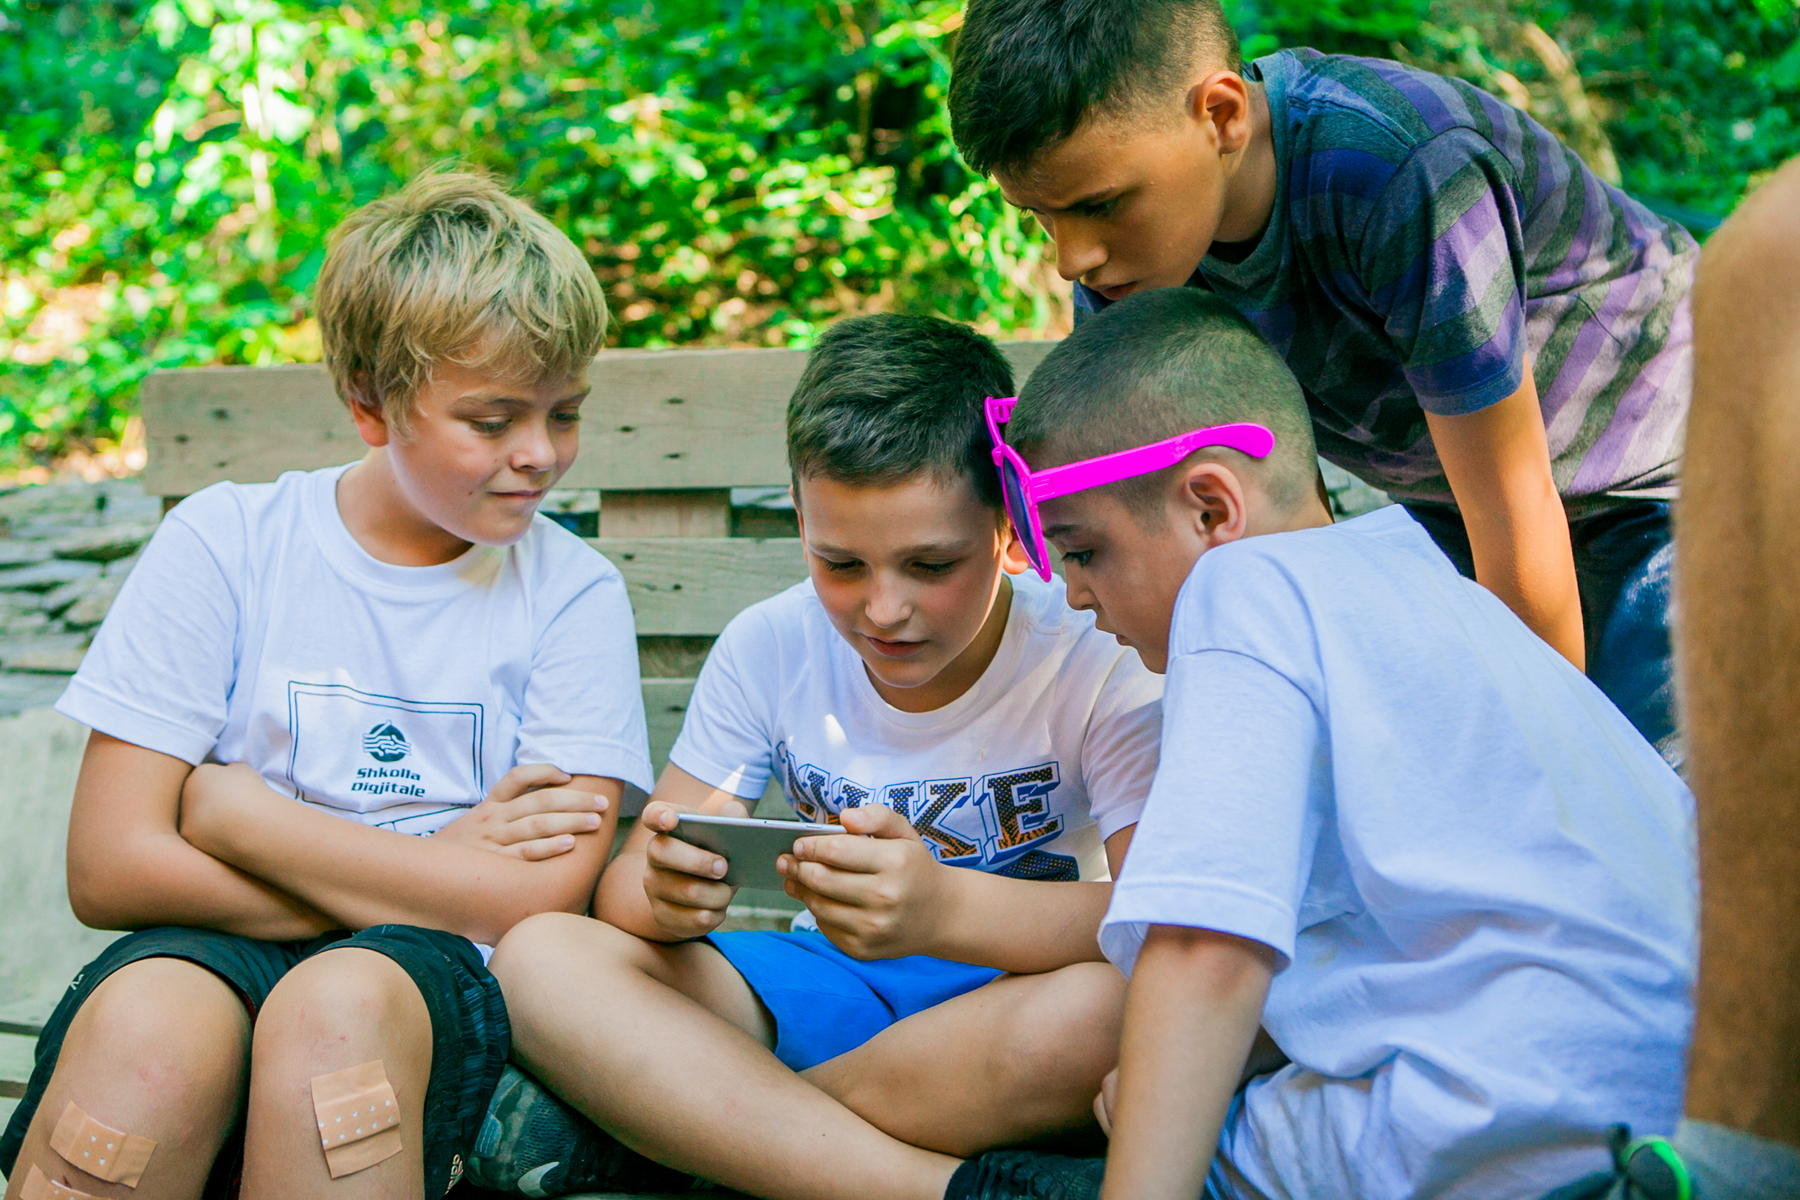 Kids learning about nature through their favorite gadgets © Digital School